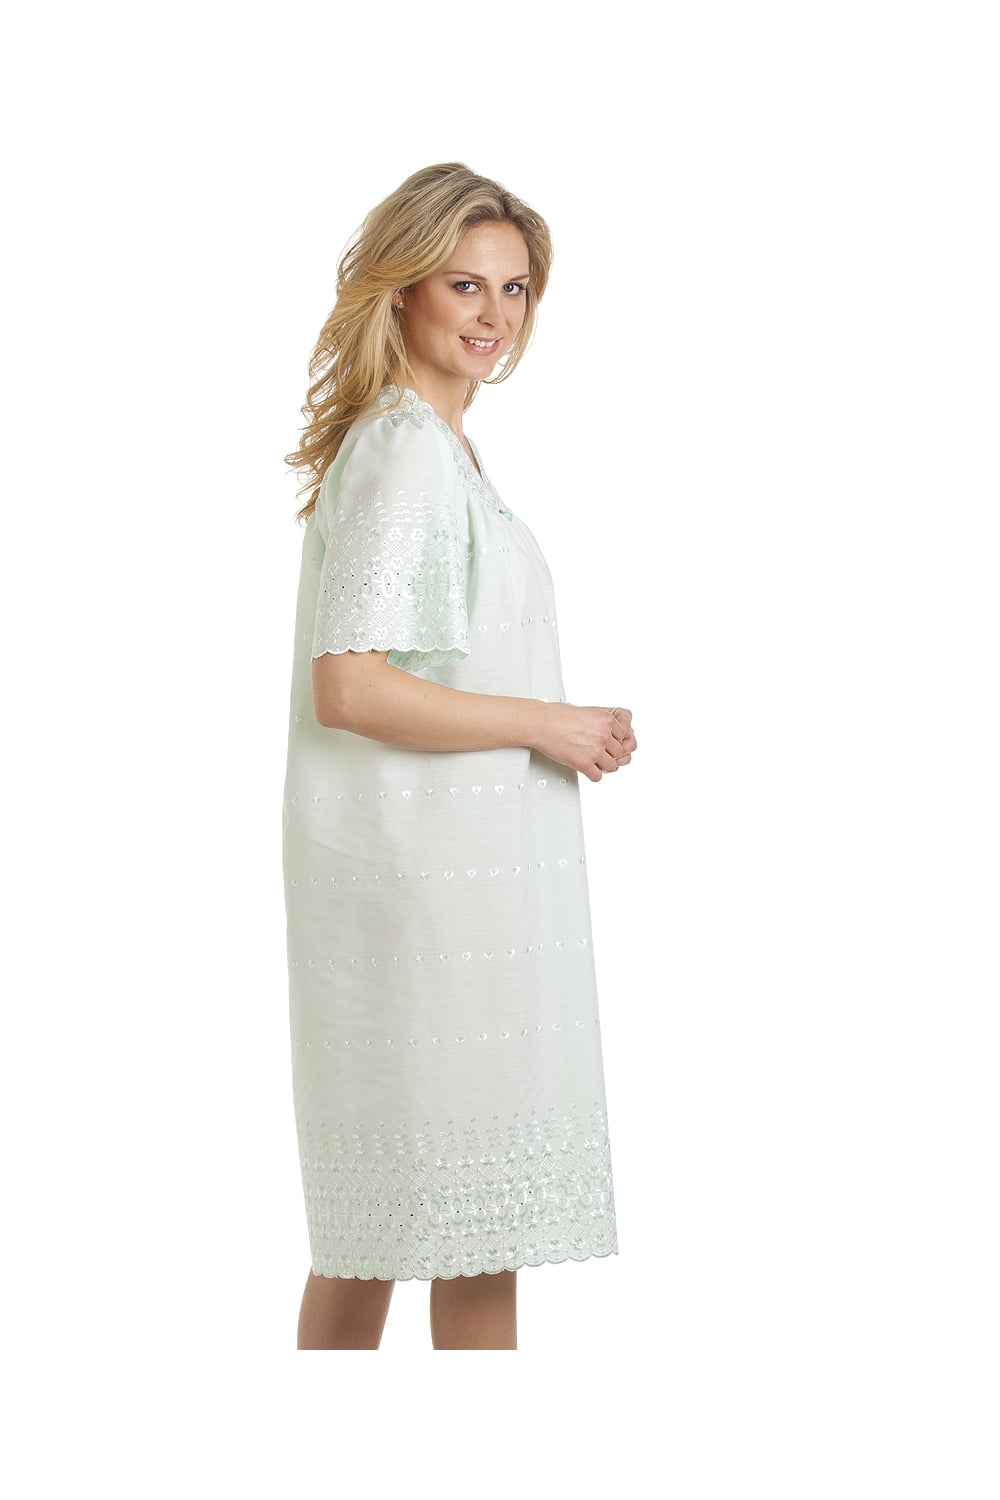 Classic short sleeved mint green embroidered nightdress